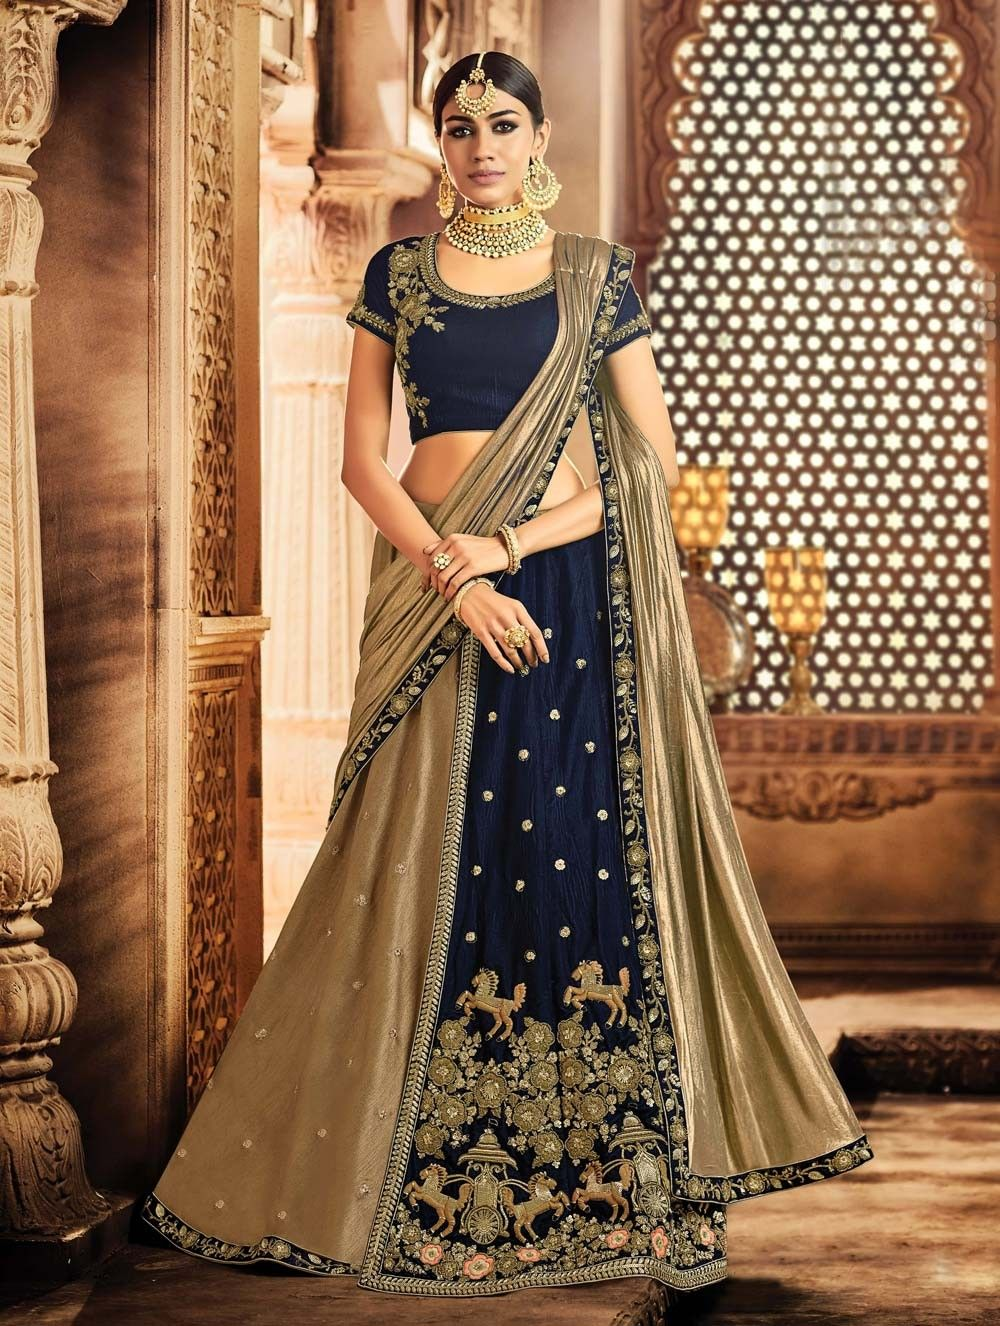 1a19a9a8f9 Upcoming Latest Bridal Lehenga Styles 2018-2019 Indian Trends ...